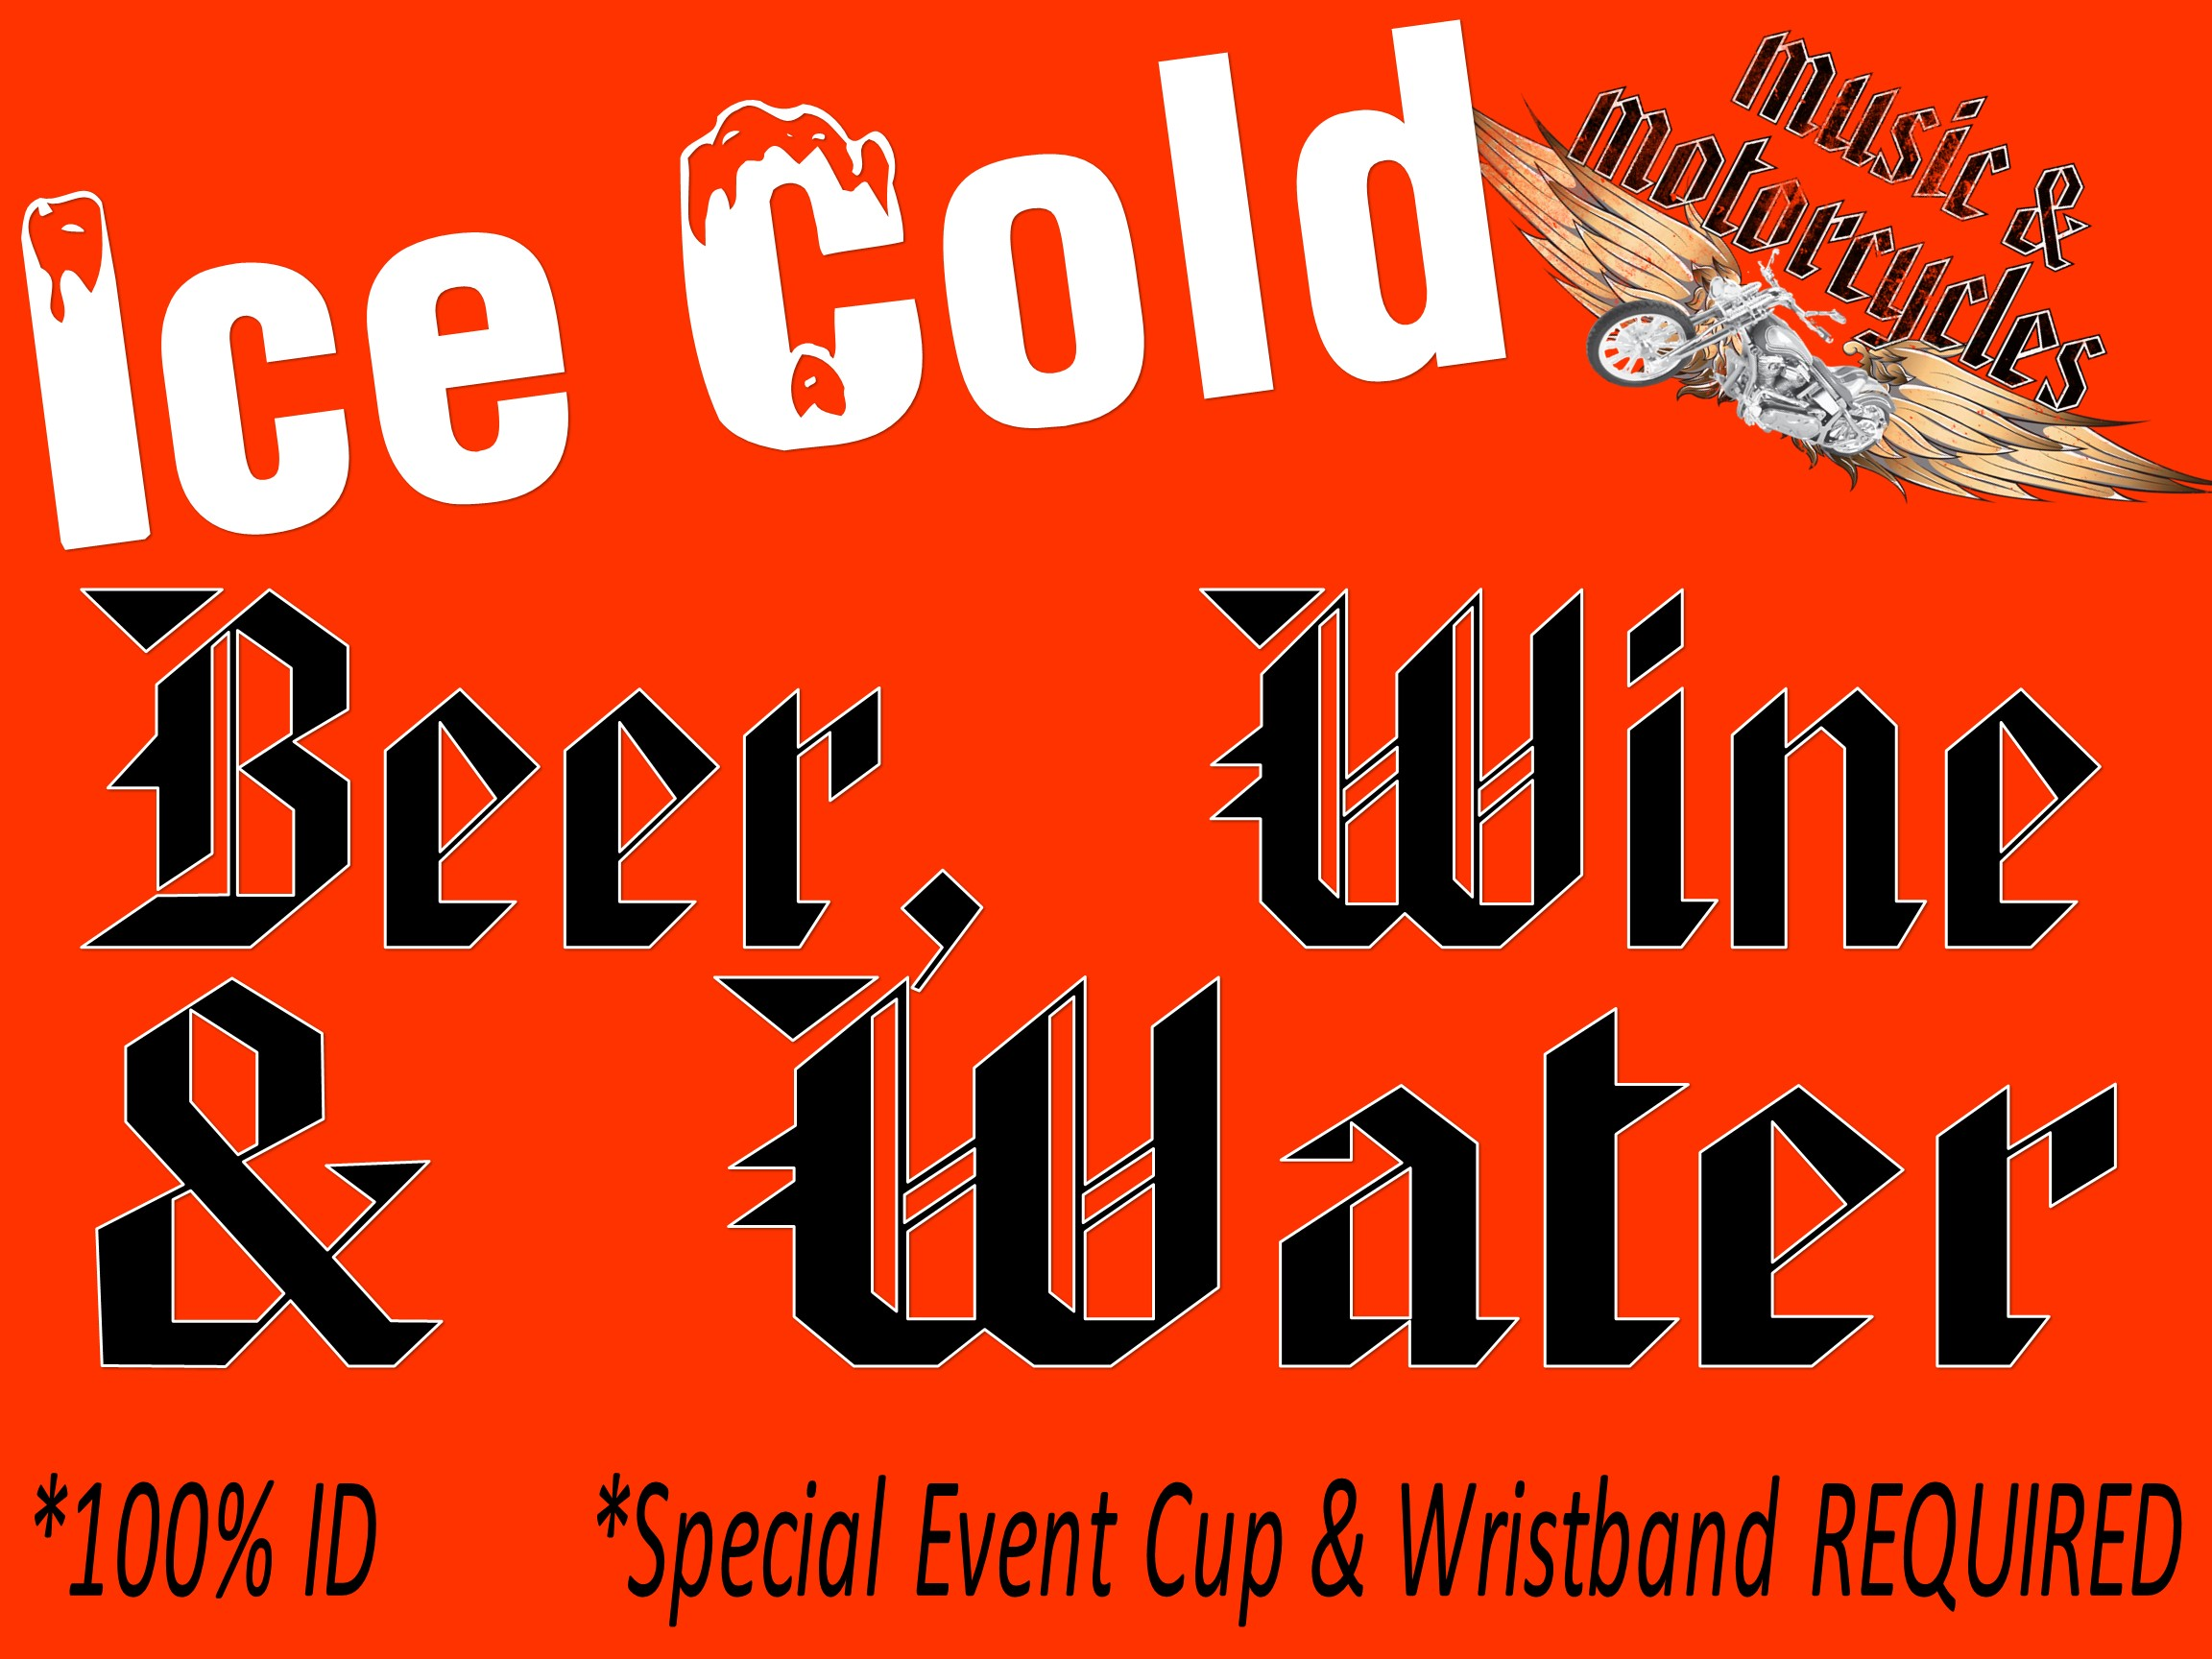 FREE Wristbands located at the Main Street ID Check Booth near beer tent. 100% ID - NO EXCEPTIONS